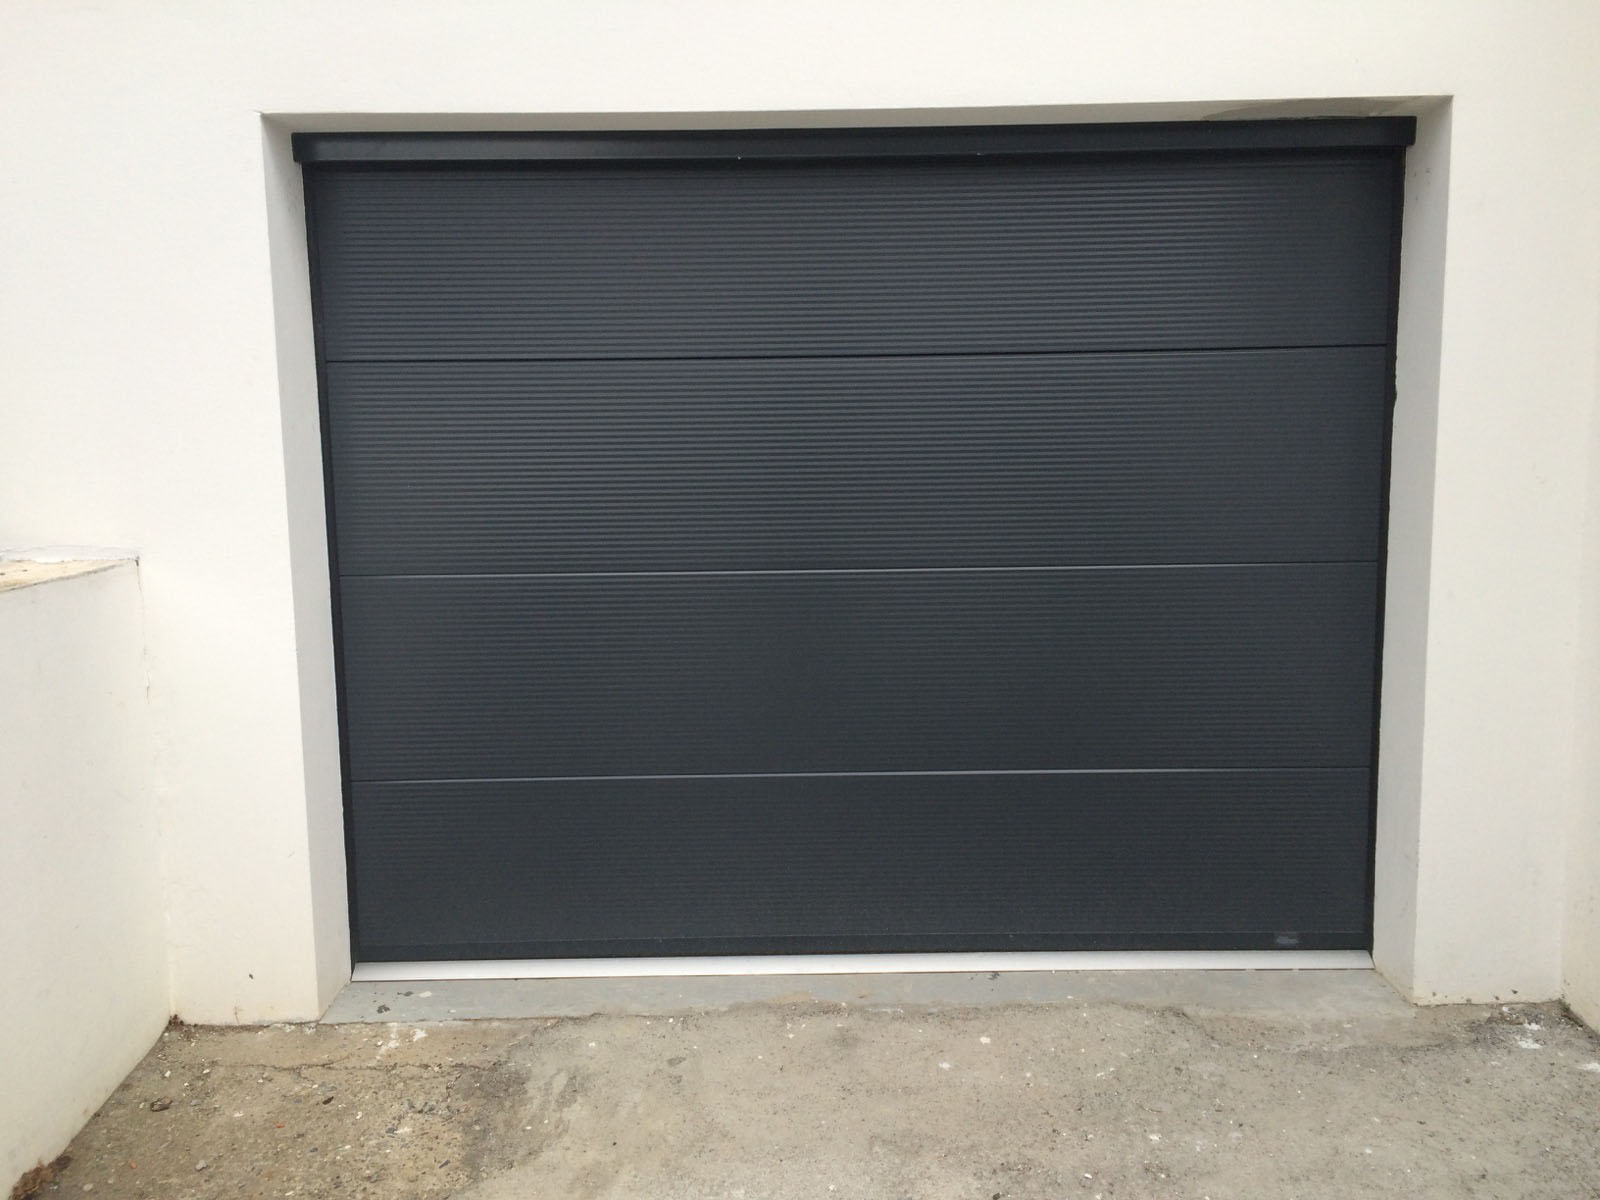 Porte de garage alliance menuiserie monfraix - Porte de garage sectionnelle gris anthracite ...